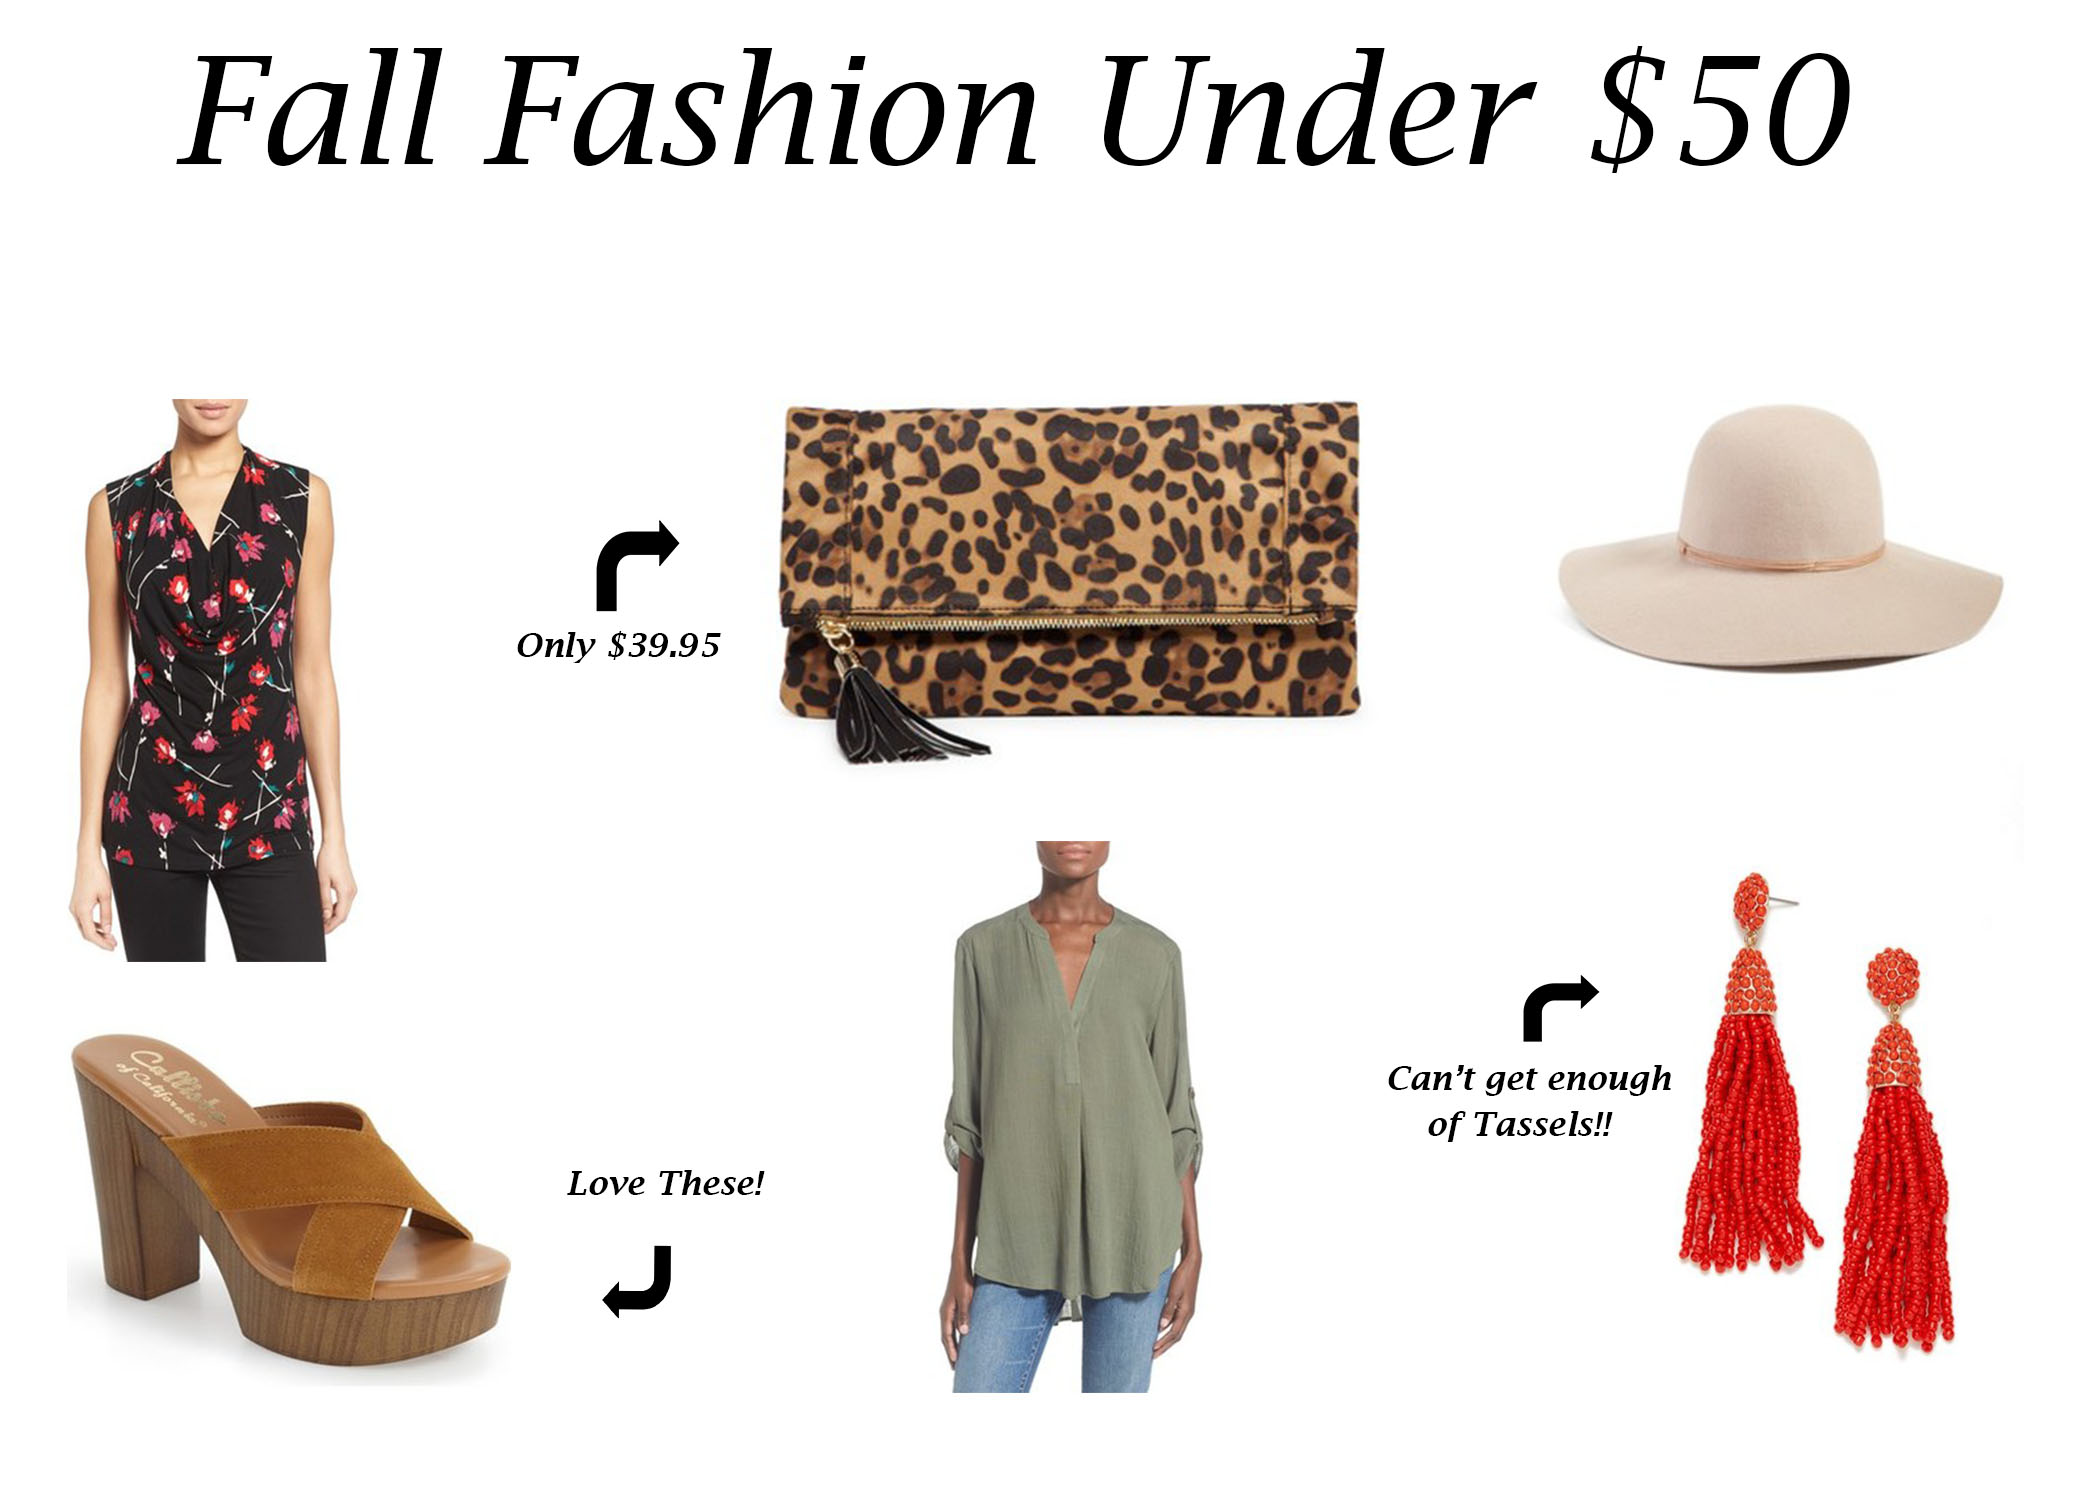 Fall Fashion Under %50, Nordstrom Shopping